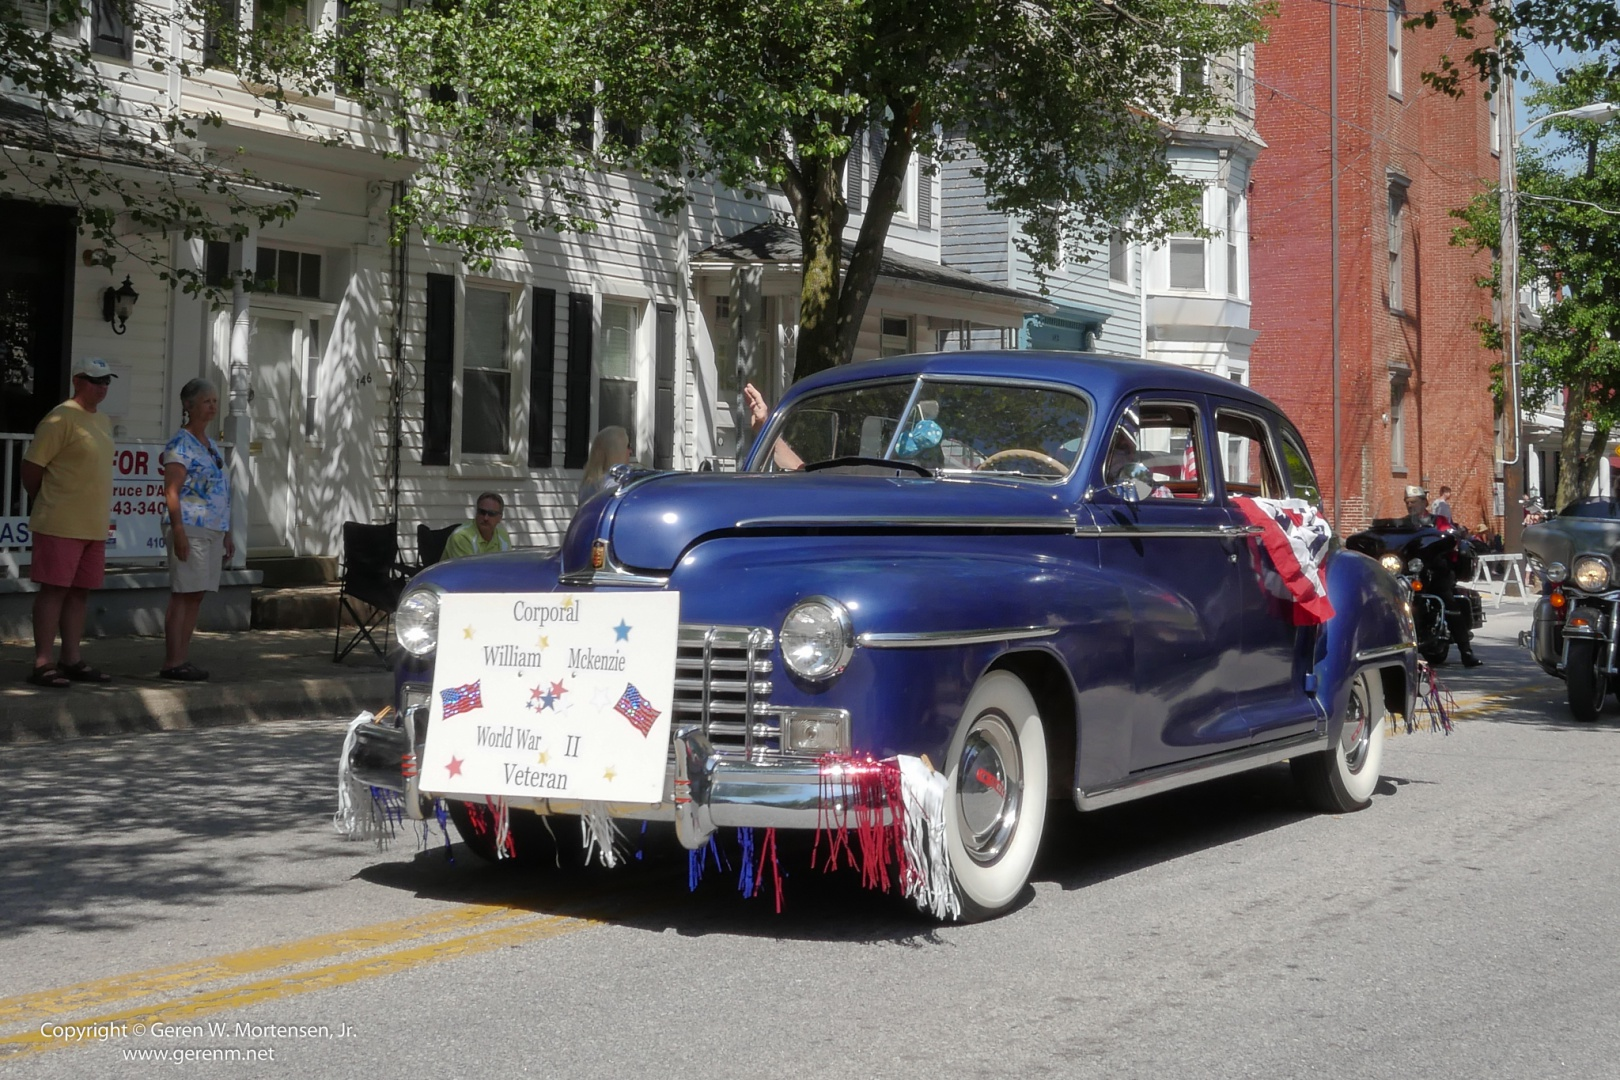 Memorial-Day-Parade_May-26-2014_01_PANA.jpg